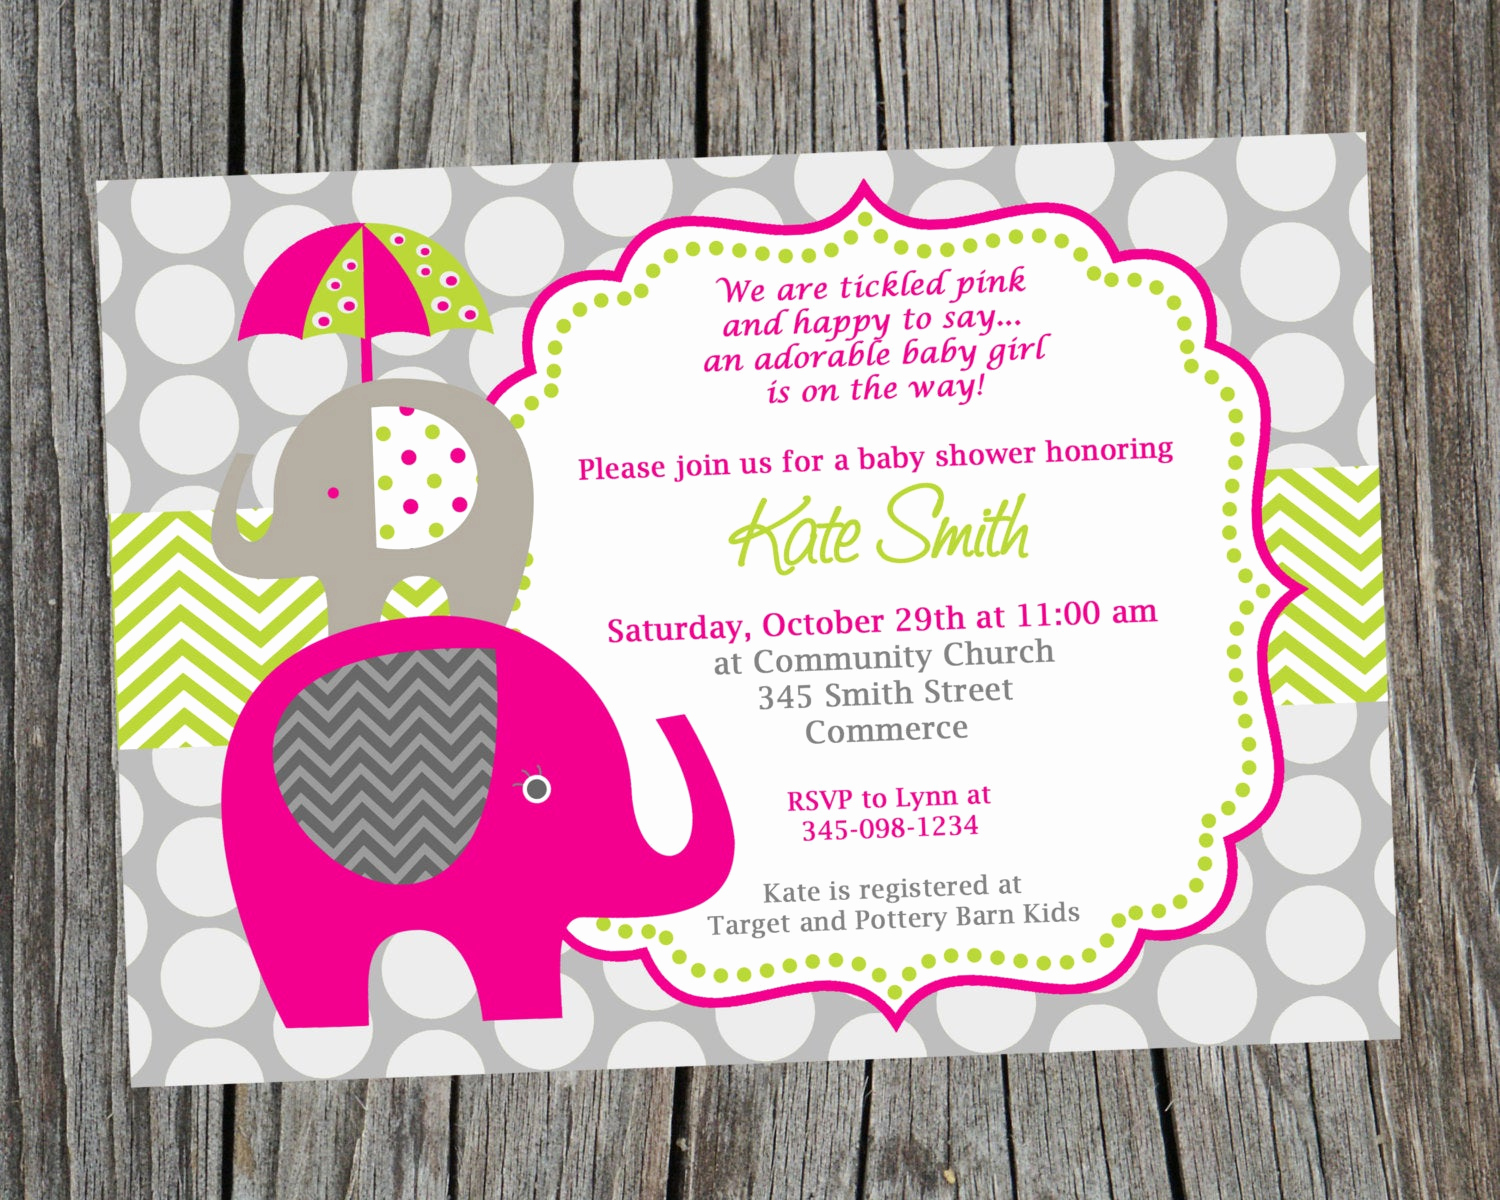 Elephant Invitation Baby Shower Awesome Hot Pink and Green Elephant Baby Shower Invitation Printable